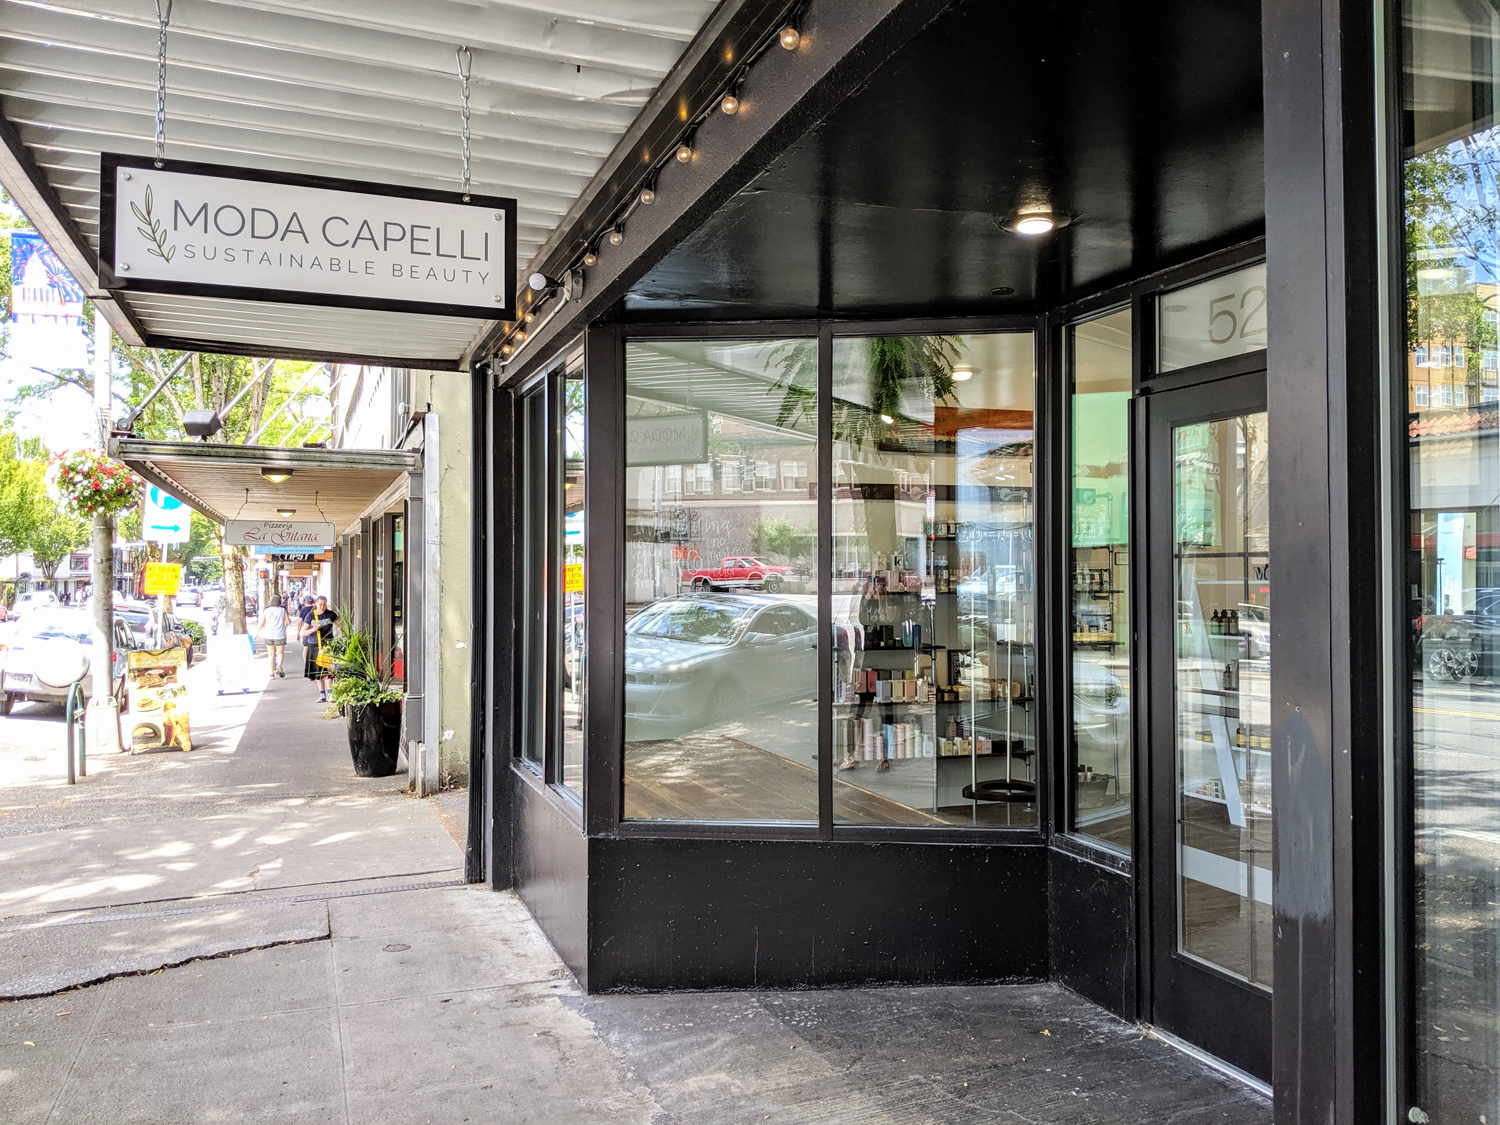 The Perfect Olympia, WA, Airbnb Location (for Gluten-Free Vegan Travel and Beauty) | OMventure.com